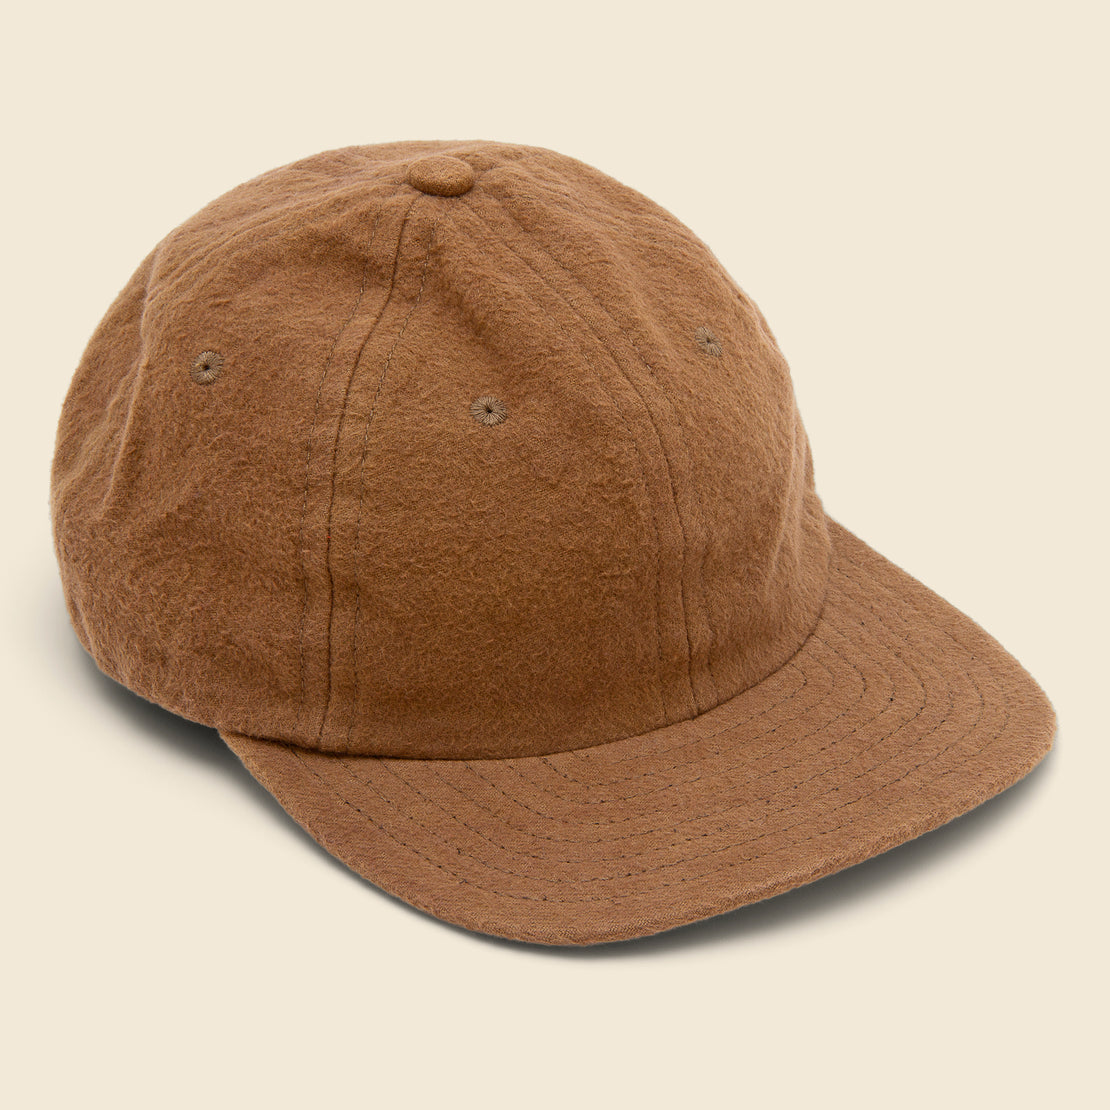 Save Khaki Chamois Baseball Cap - Field